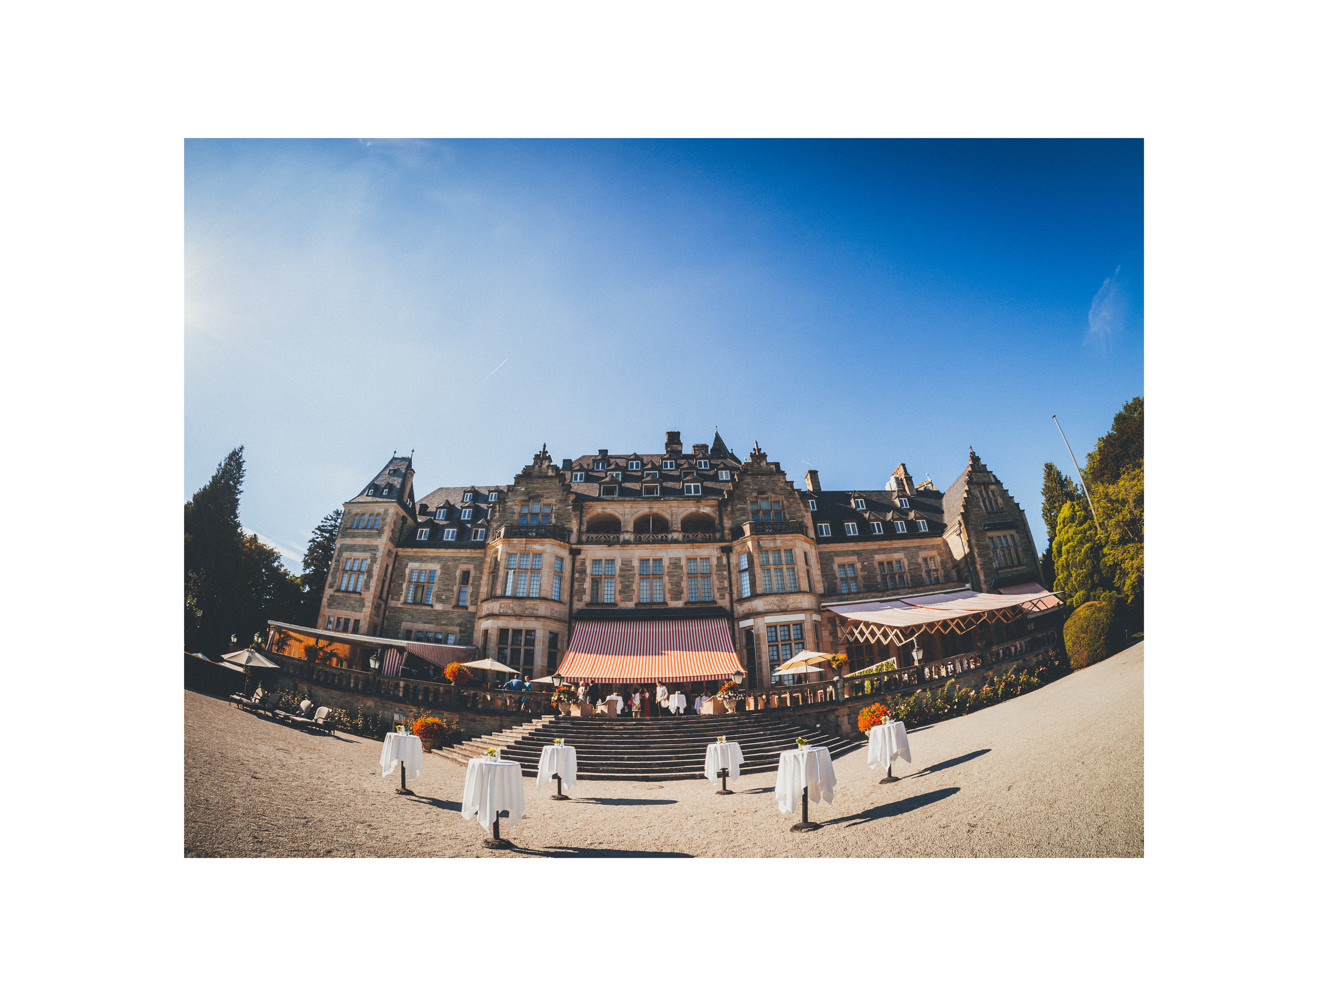 Wedding at Schlosshotel Kronberg - getting ready, church wedding, wedding portraits in the park and a great party